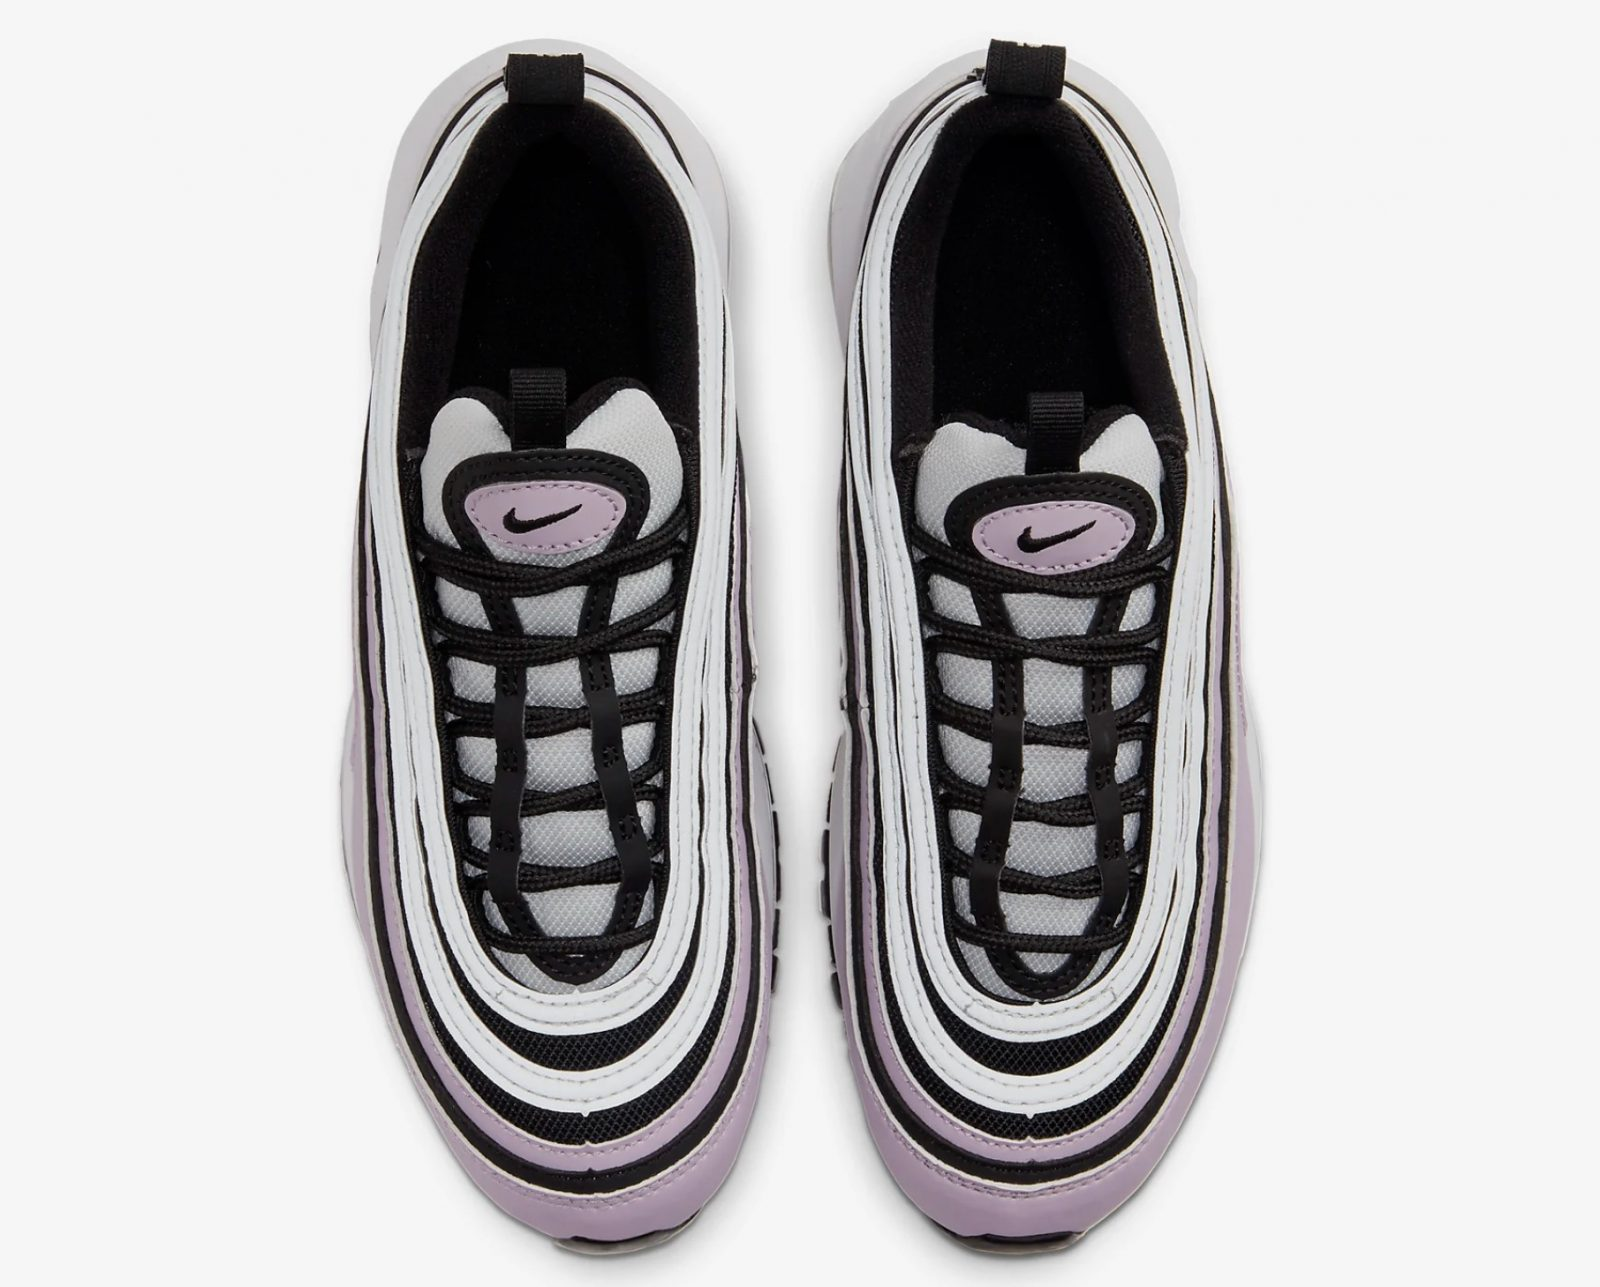 Rock Around The Christmas Tree In These Iced Violet Air Max 97's For UNDER £100 l;aces